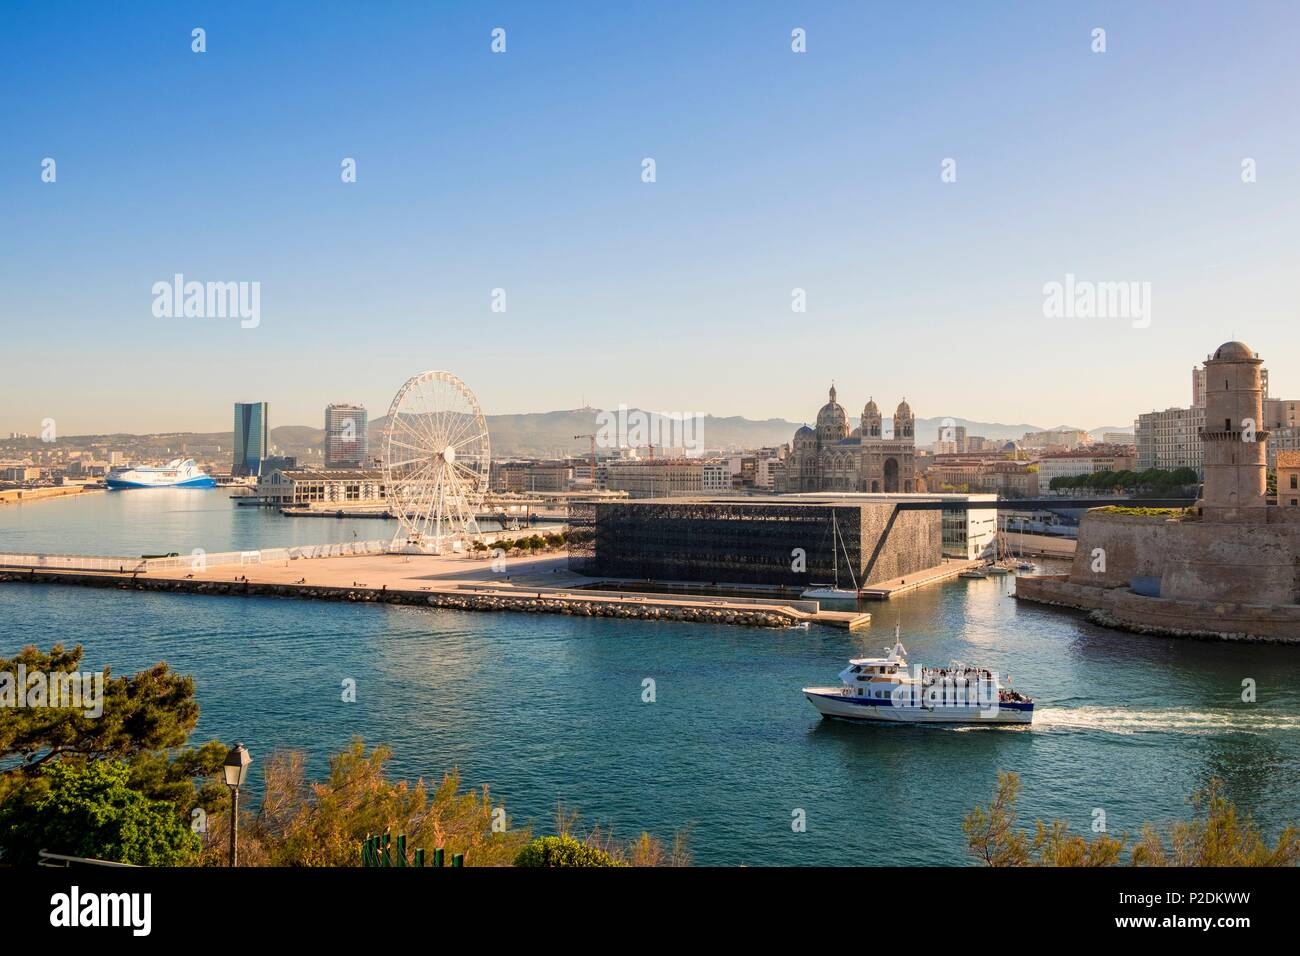 France, Bouches du Rhone, Marseille, J4 pier, Fort Saint Jean, MuCEM (Museum of European and Mediterranean Civilizations) by architect Rudy Ricciotti and the Cathedral of La Major , Hadid's CMA CGM Tower and Jean Nouvel's La Marseillaise Tower Stock Photo